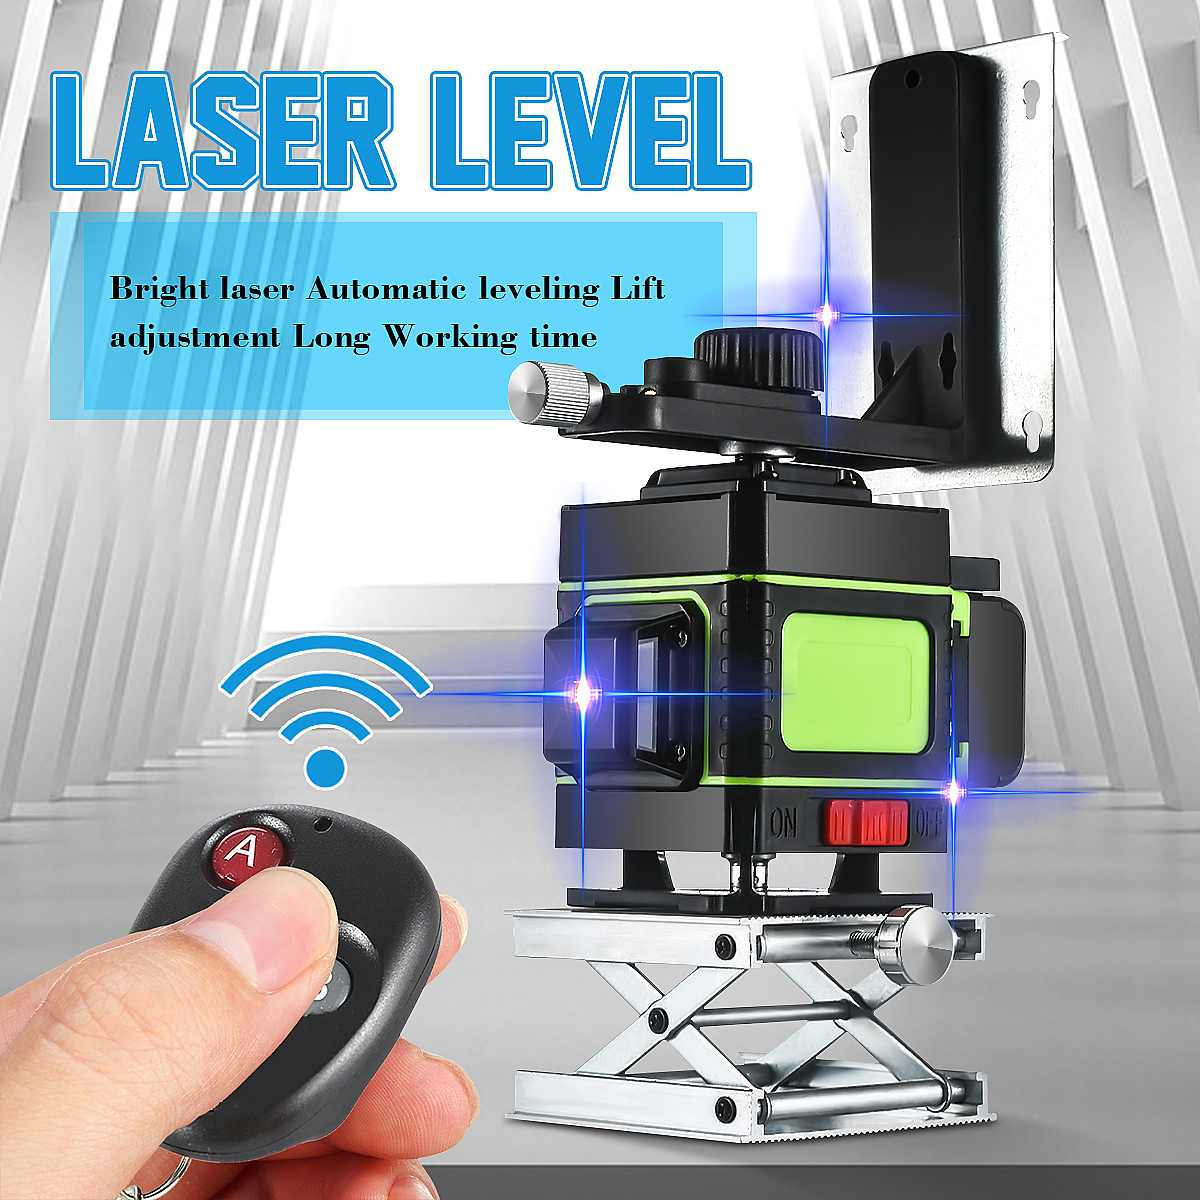 <font><b>3D</b></font> <font><b>12</b></font> Blue <font><b>Lines</b></font> <font><b>Laser</b></font> <font><b>Level</b></font> Measuring Devices <font><b>Line</b></font> 3x360 Degree Rotary Horizontal And Vertical Cross <font><b>Laser</b></font> <font><b>Level</b></font> Waterproof image